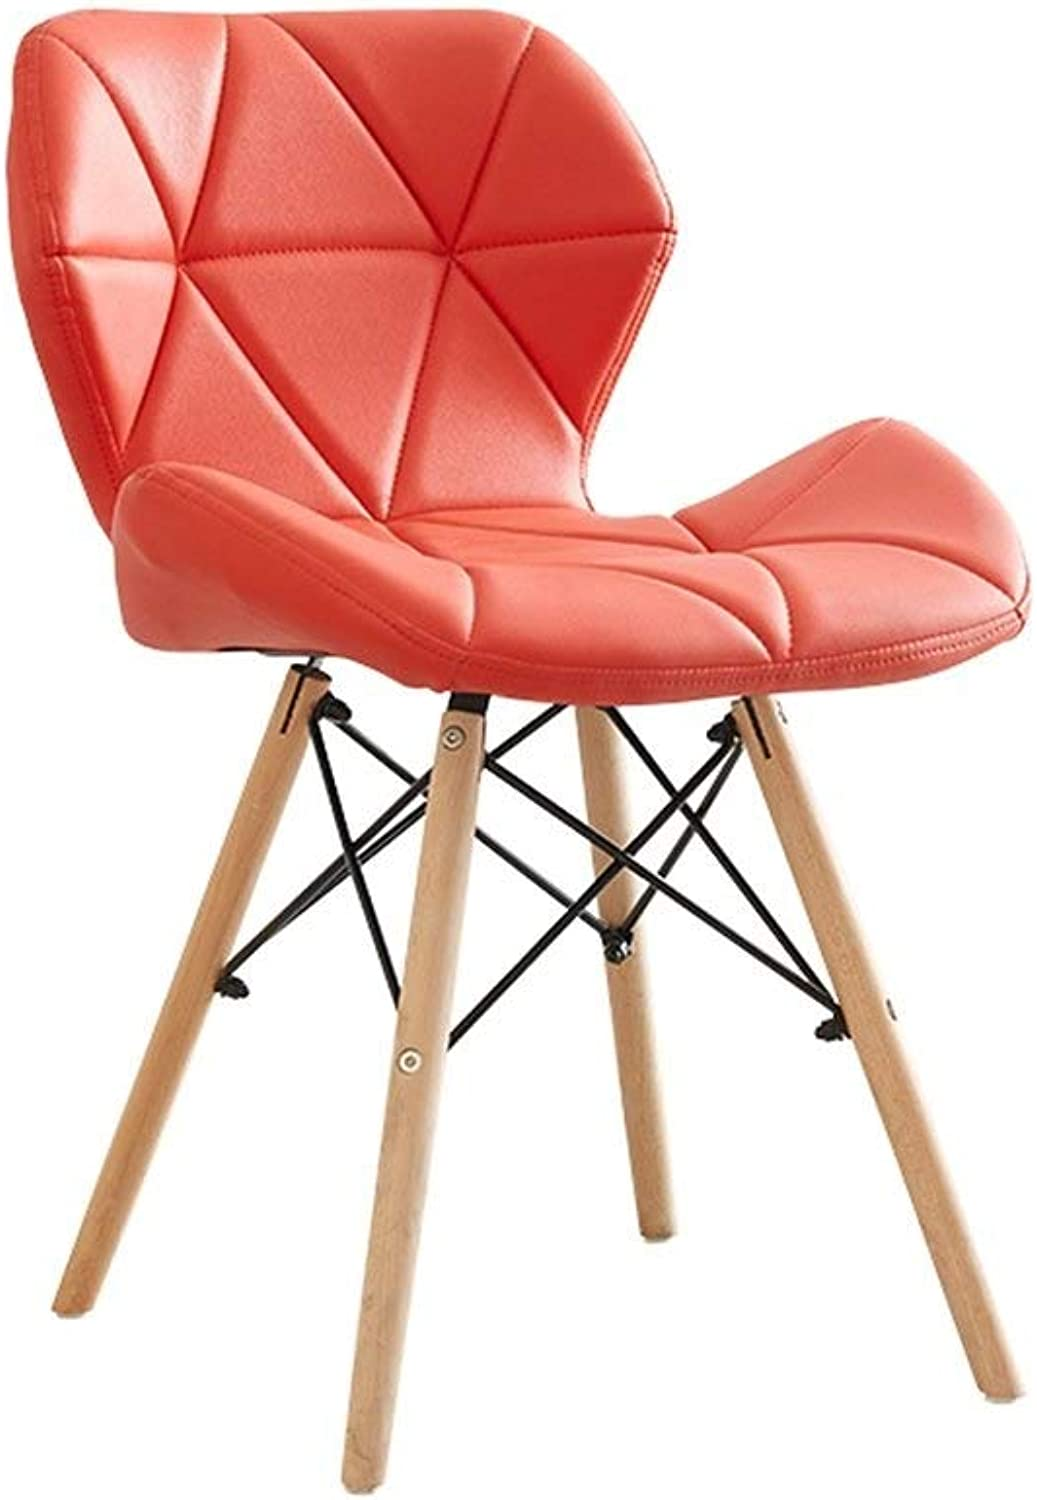 MMAXZ Bar Chair Creative Solid Wood Nordic backrest Dining Chair, Modern Minimalist Home Studio Makeup Stool Computer Chair Home Decoration (color   Red)